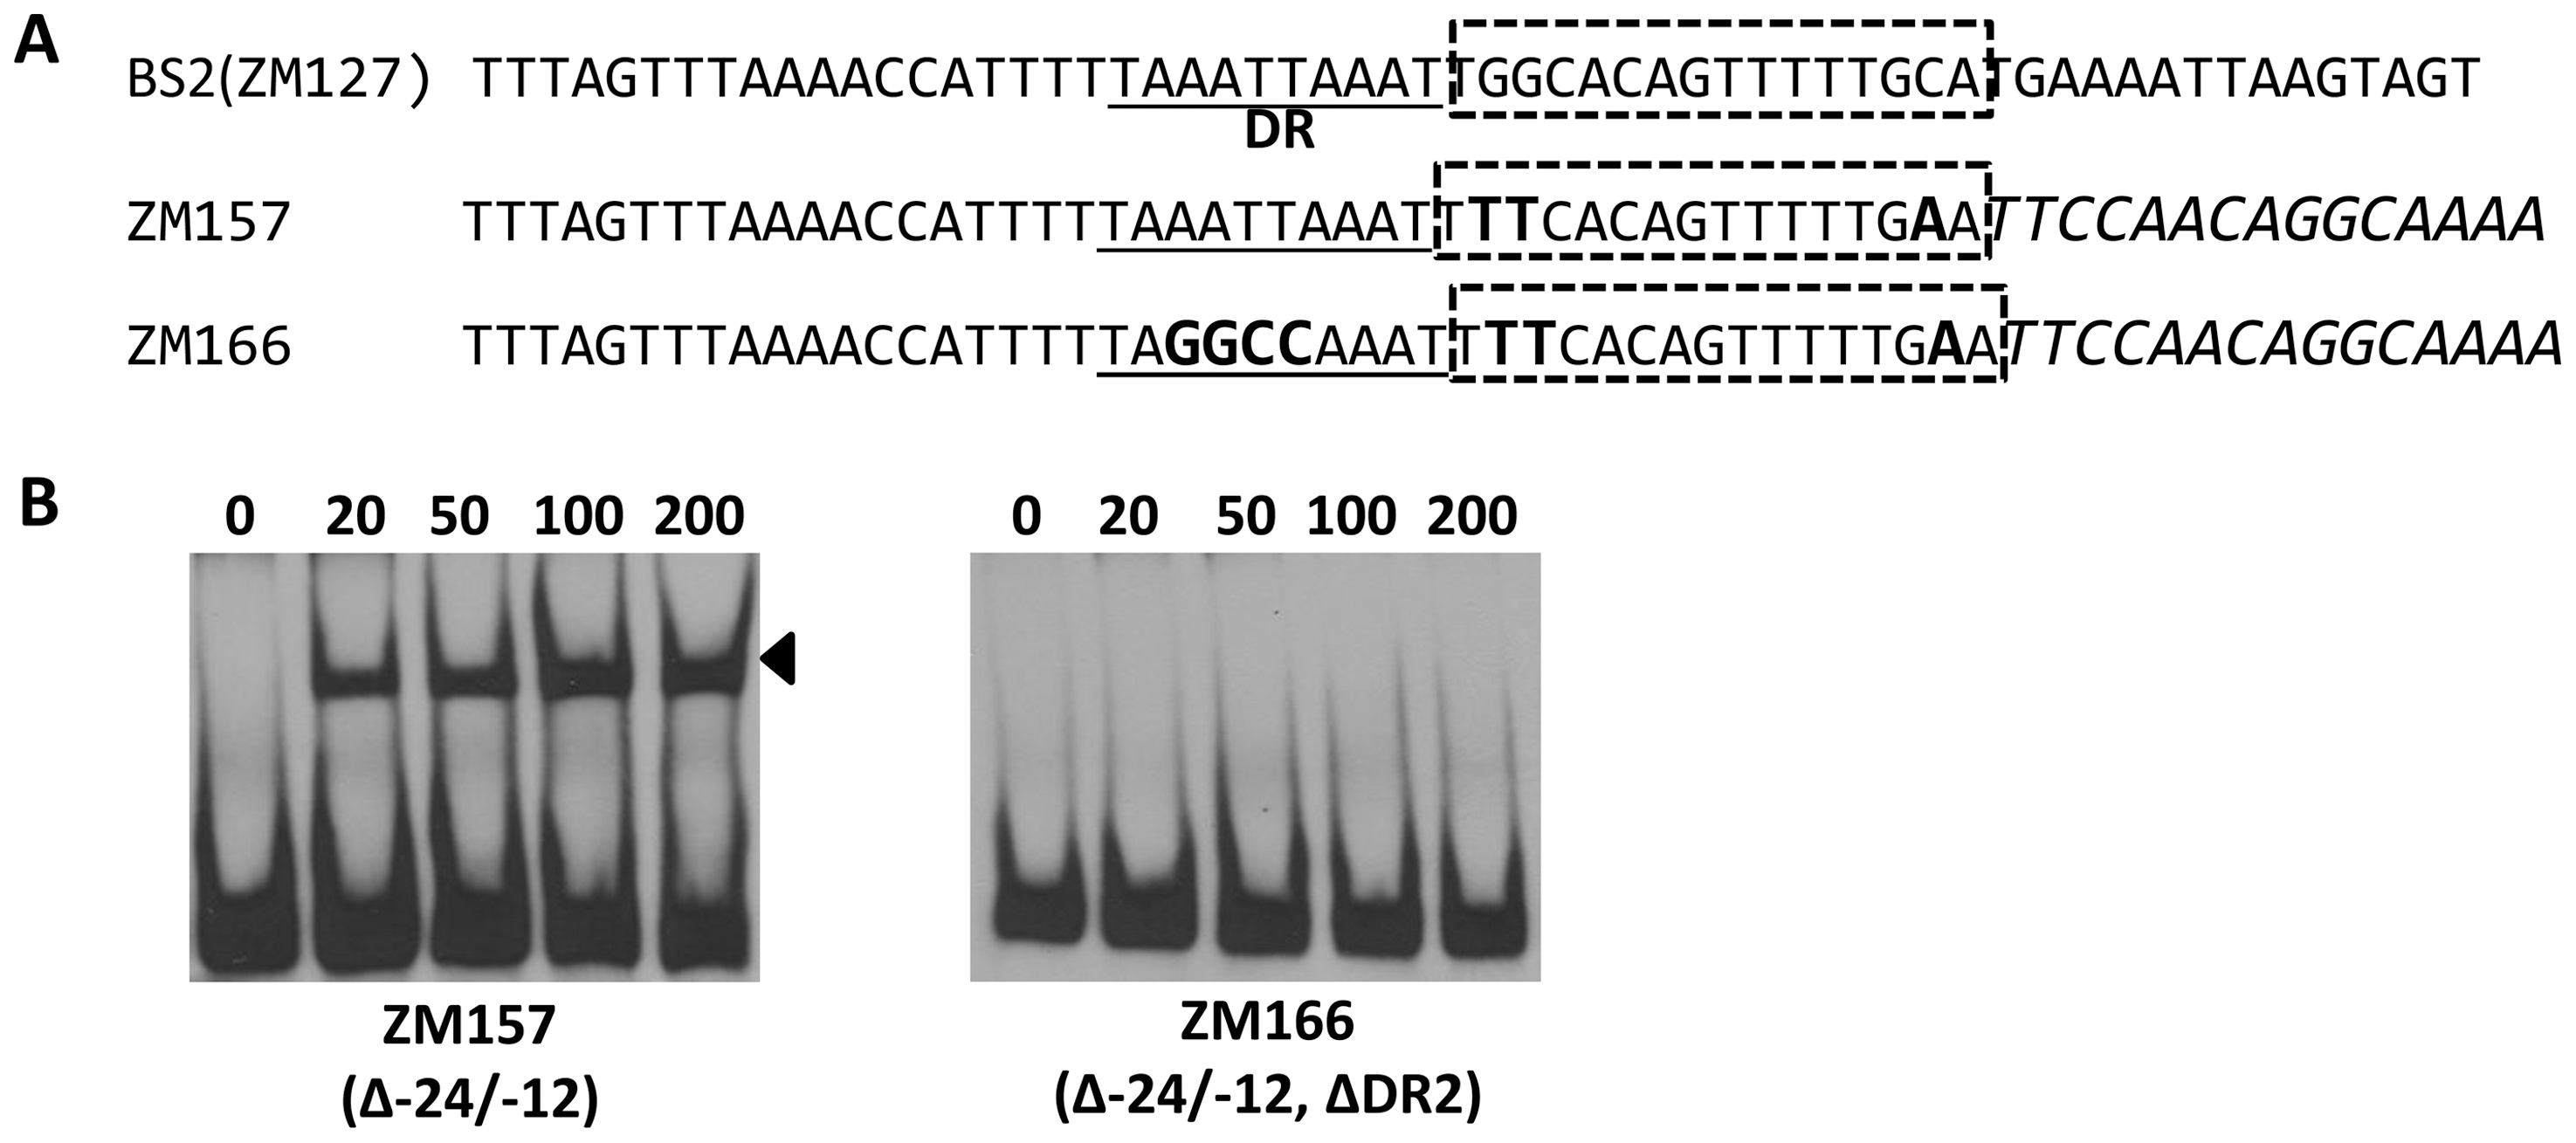 Different key nucleotides are required for BosR or RpoN binding to the <i>rpoS</i> promoter.